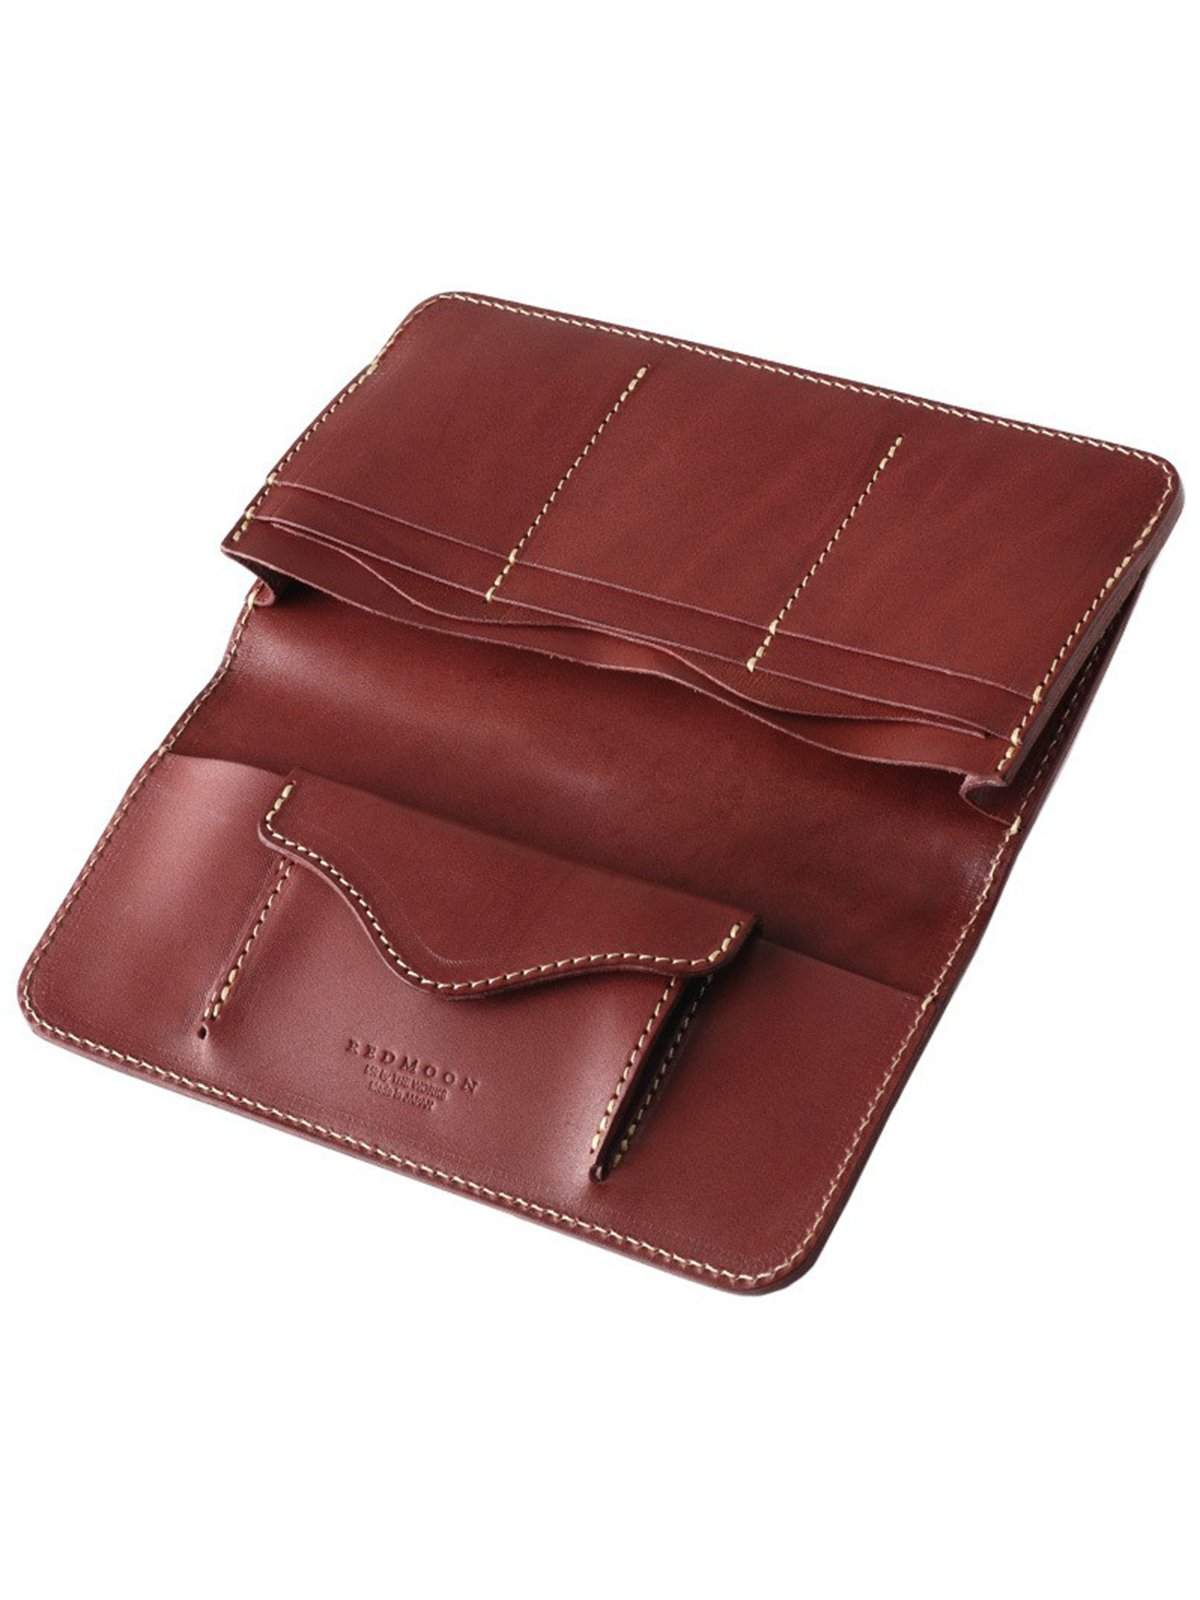 REDMOON Long Wallet RMR-02T DSD Natural - MORE by Morello Indonesia